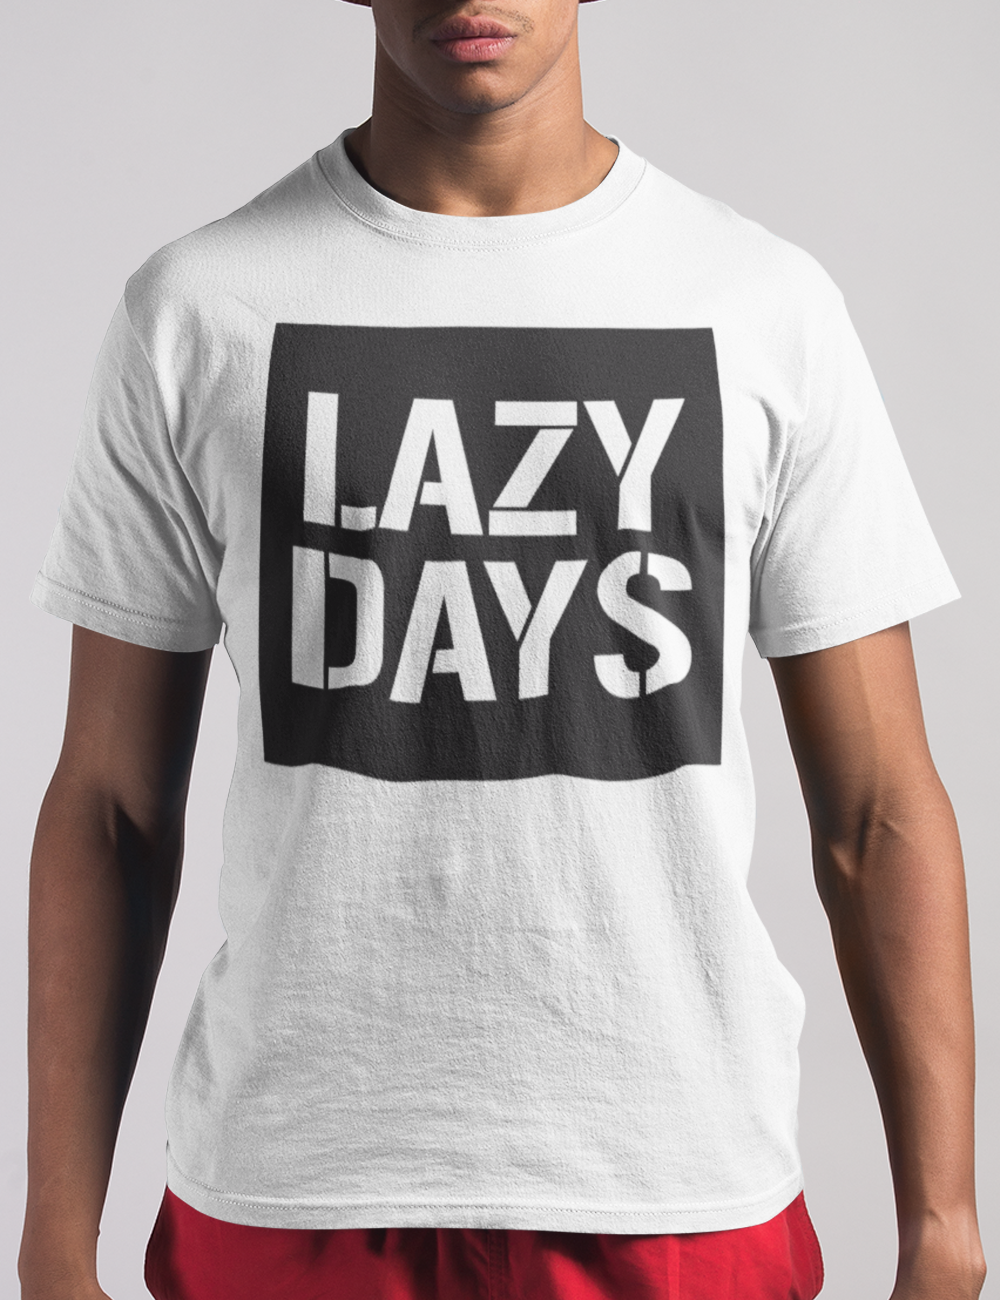 Lazy Days | T-Shirt